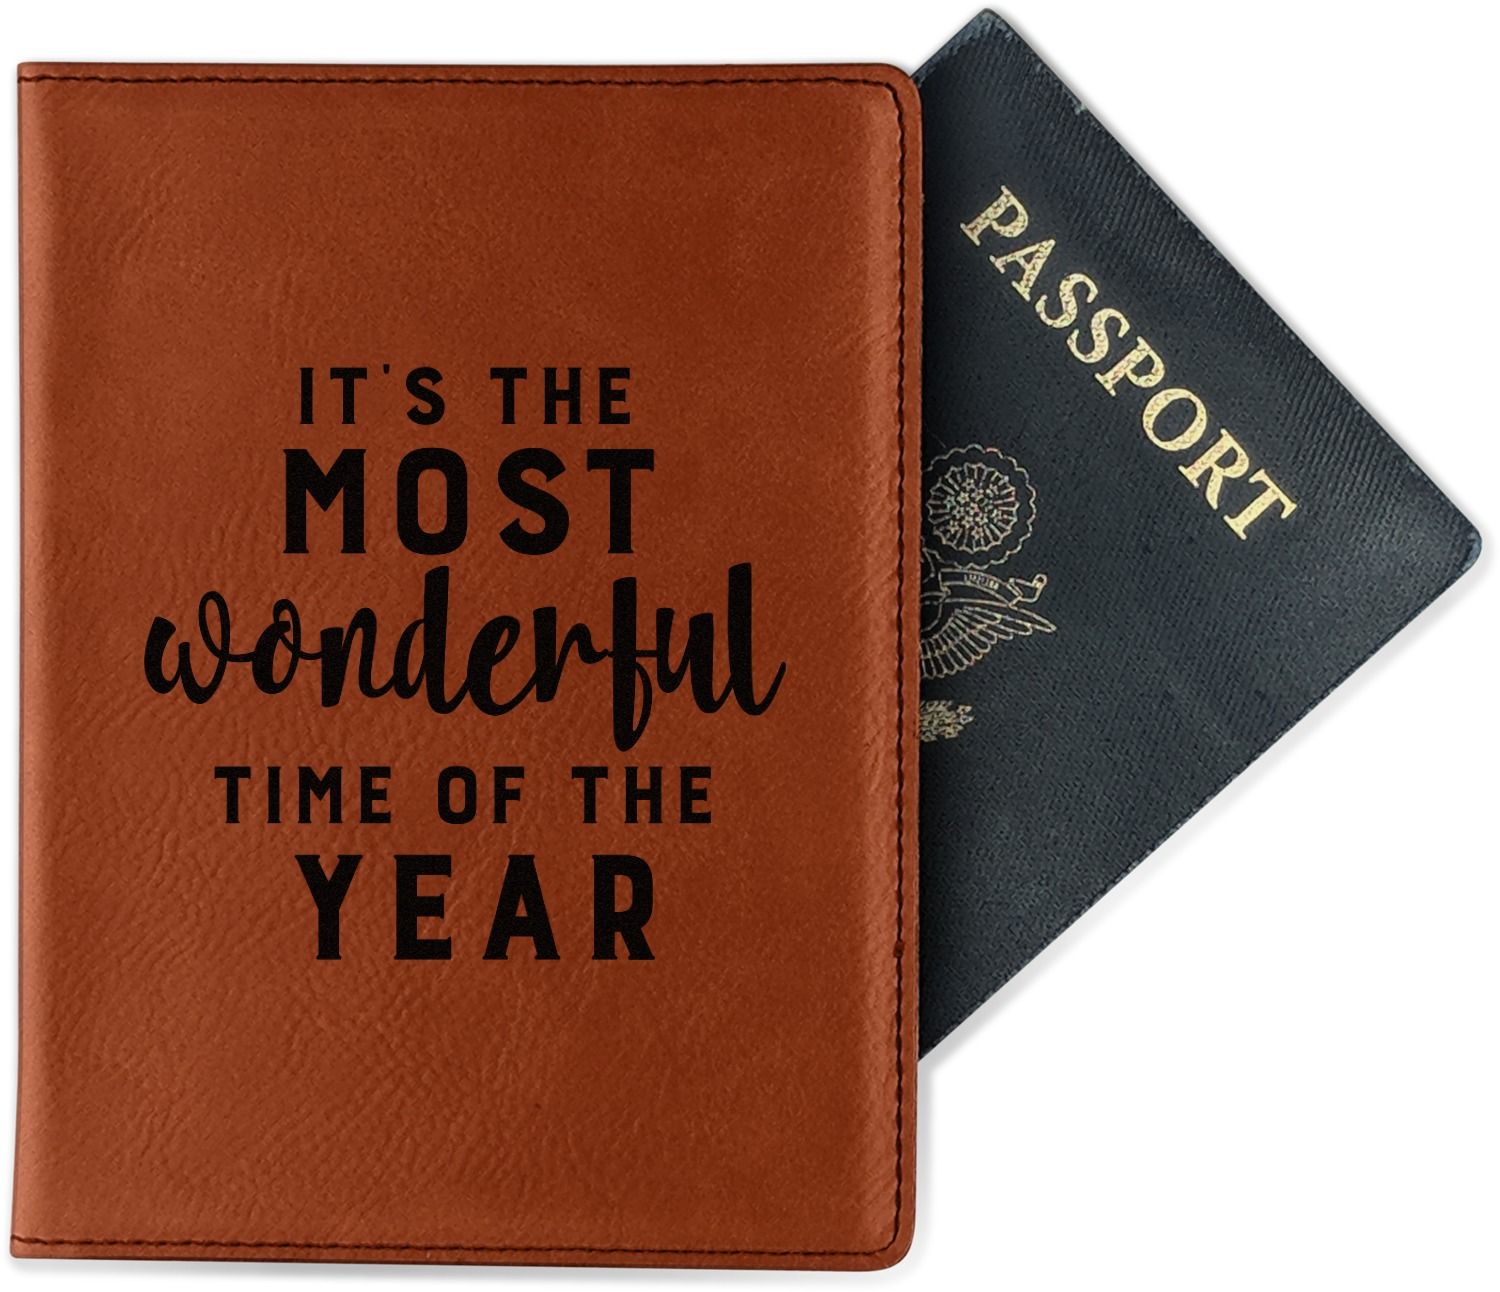 Cheer Genuine Leather Passport Cover Personalized